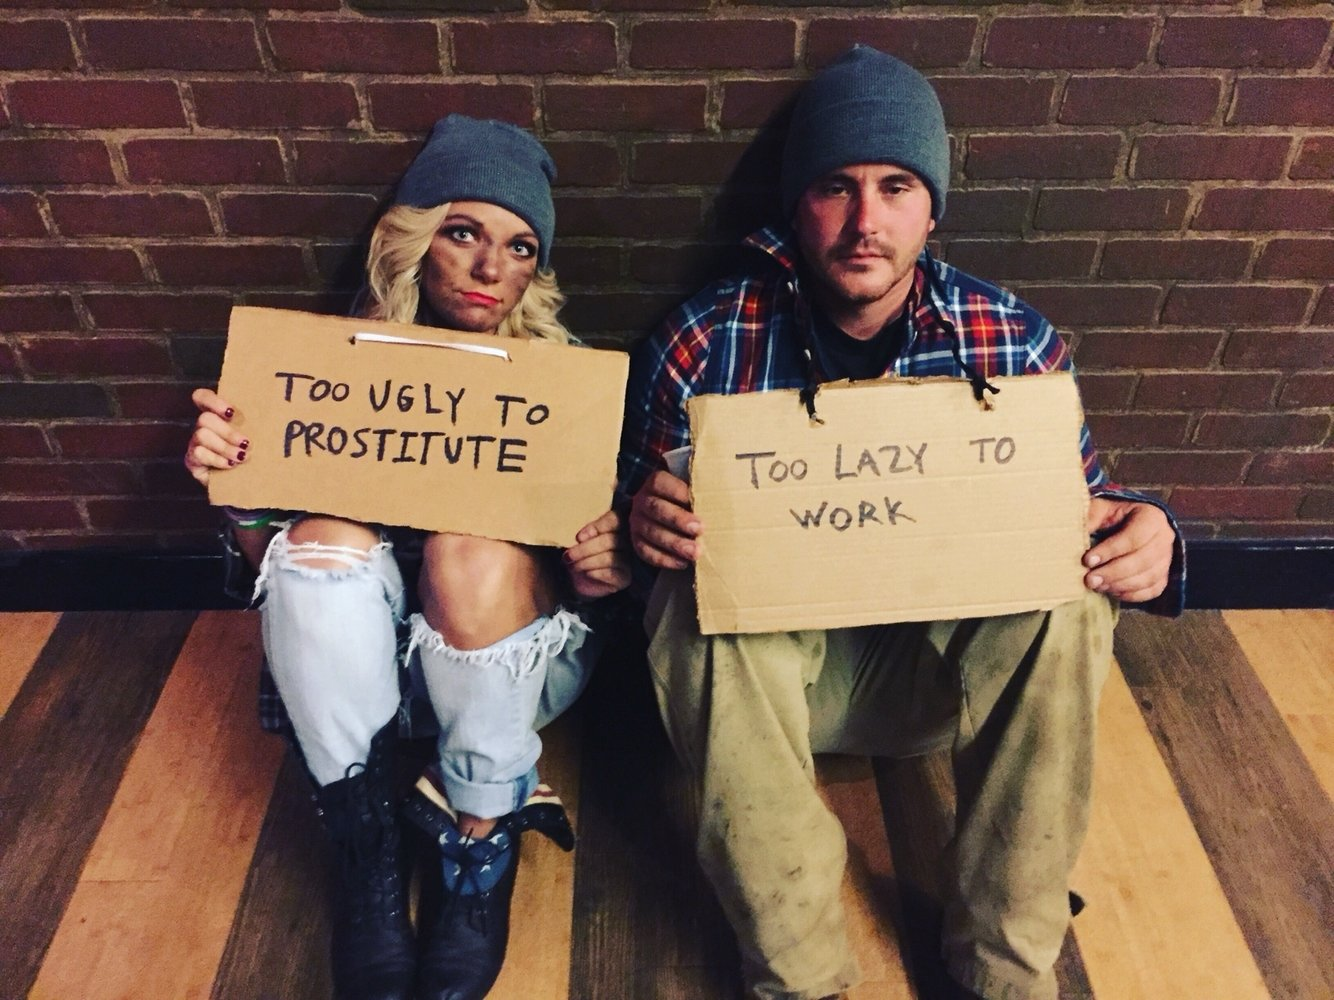 10 Lovely Creative Costume Ideas For Couples funny couples costumes holidays pinterest funny couple 15 2020